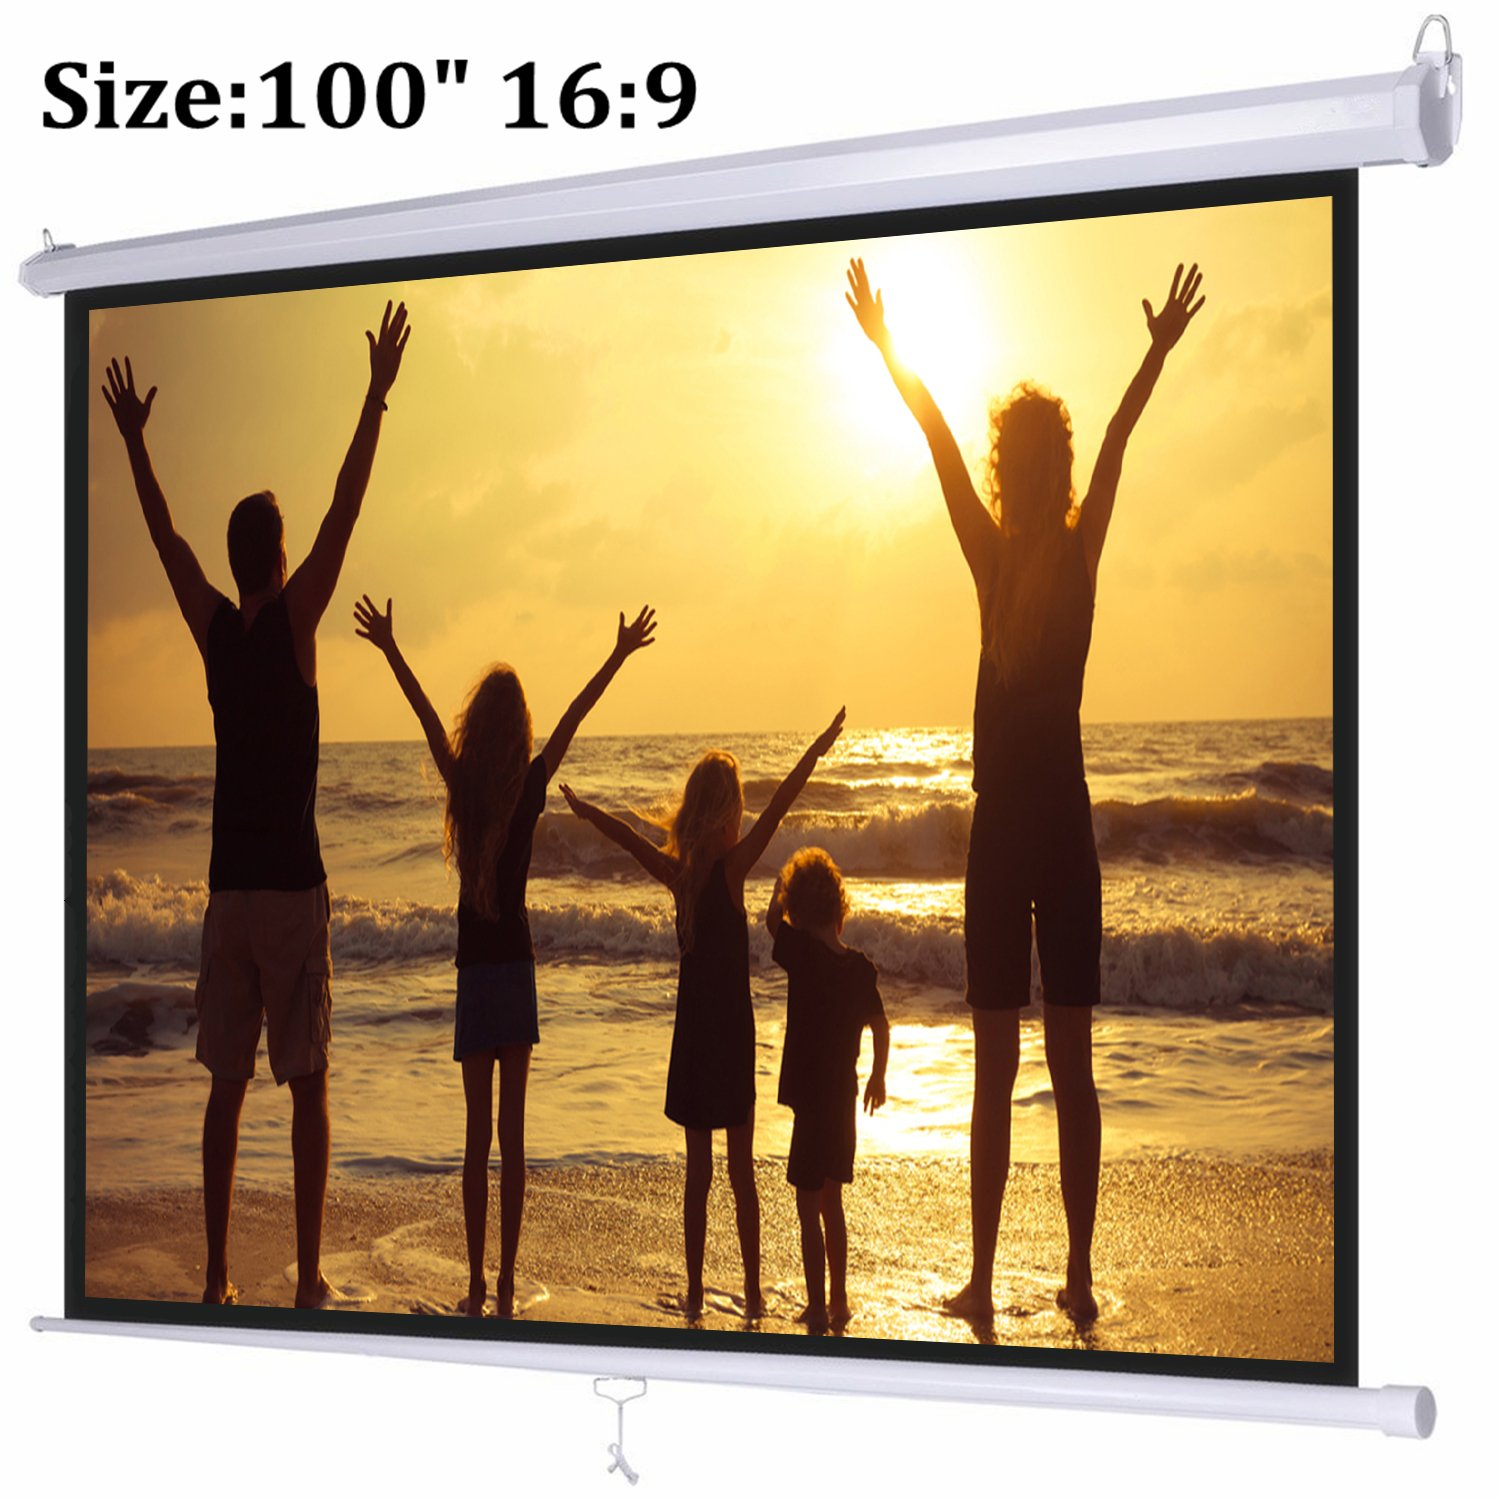 Projector Screen, Auledio Portable 100 Diagonal 16:9 HD Manual Pull Down Video Projection Screen with Auto Lock - Suitable for HDTV / Sports / Movies / Presentations